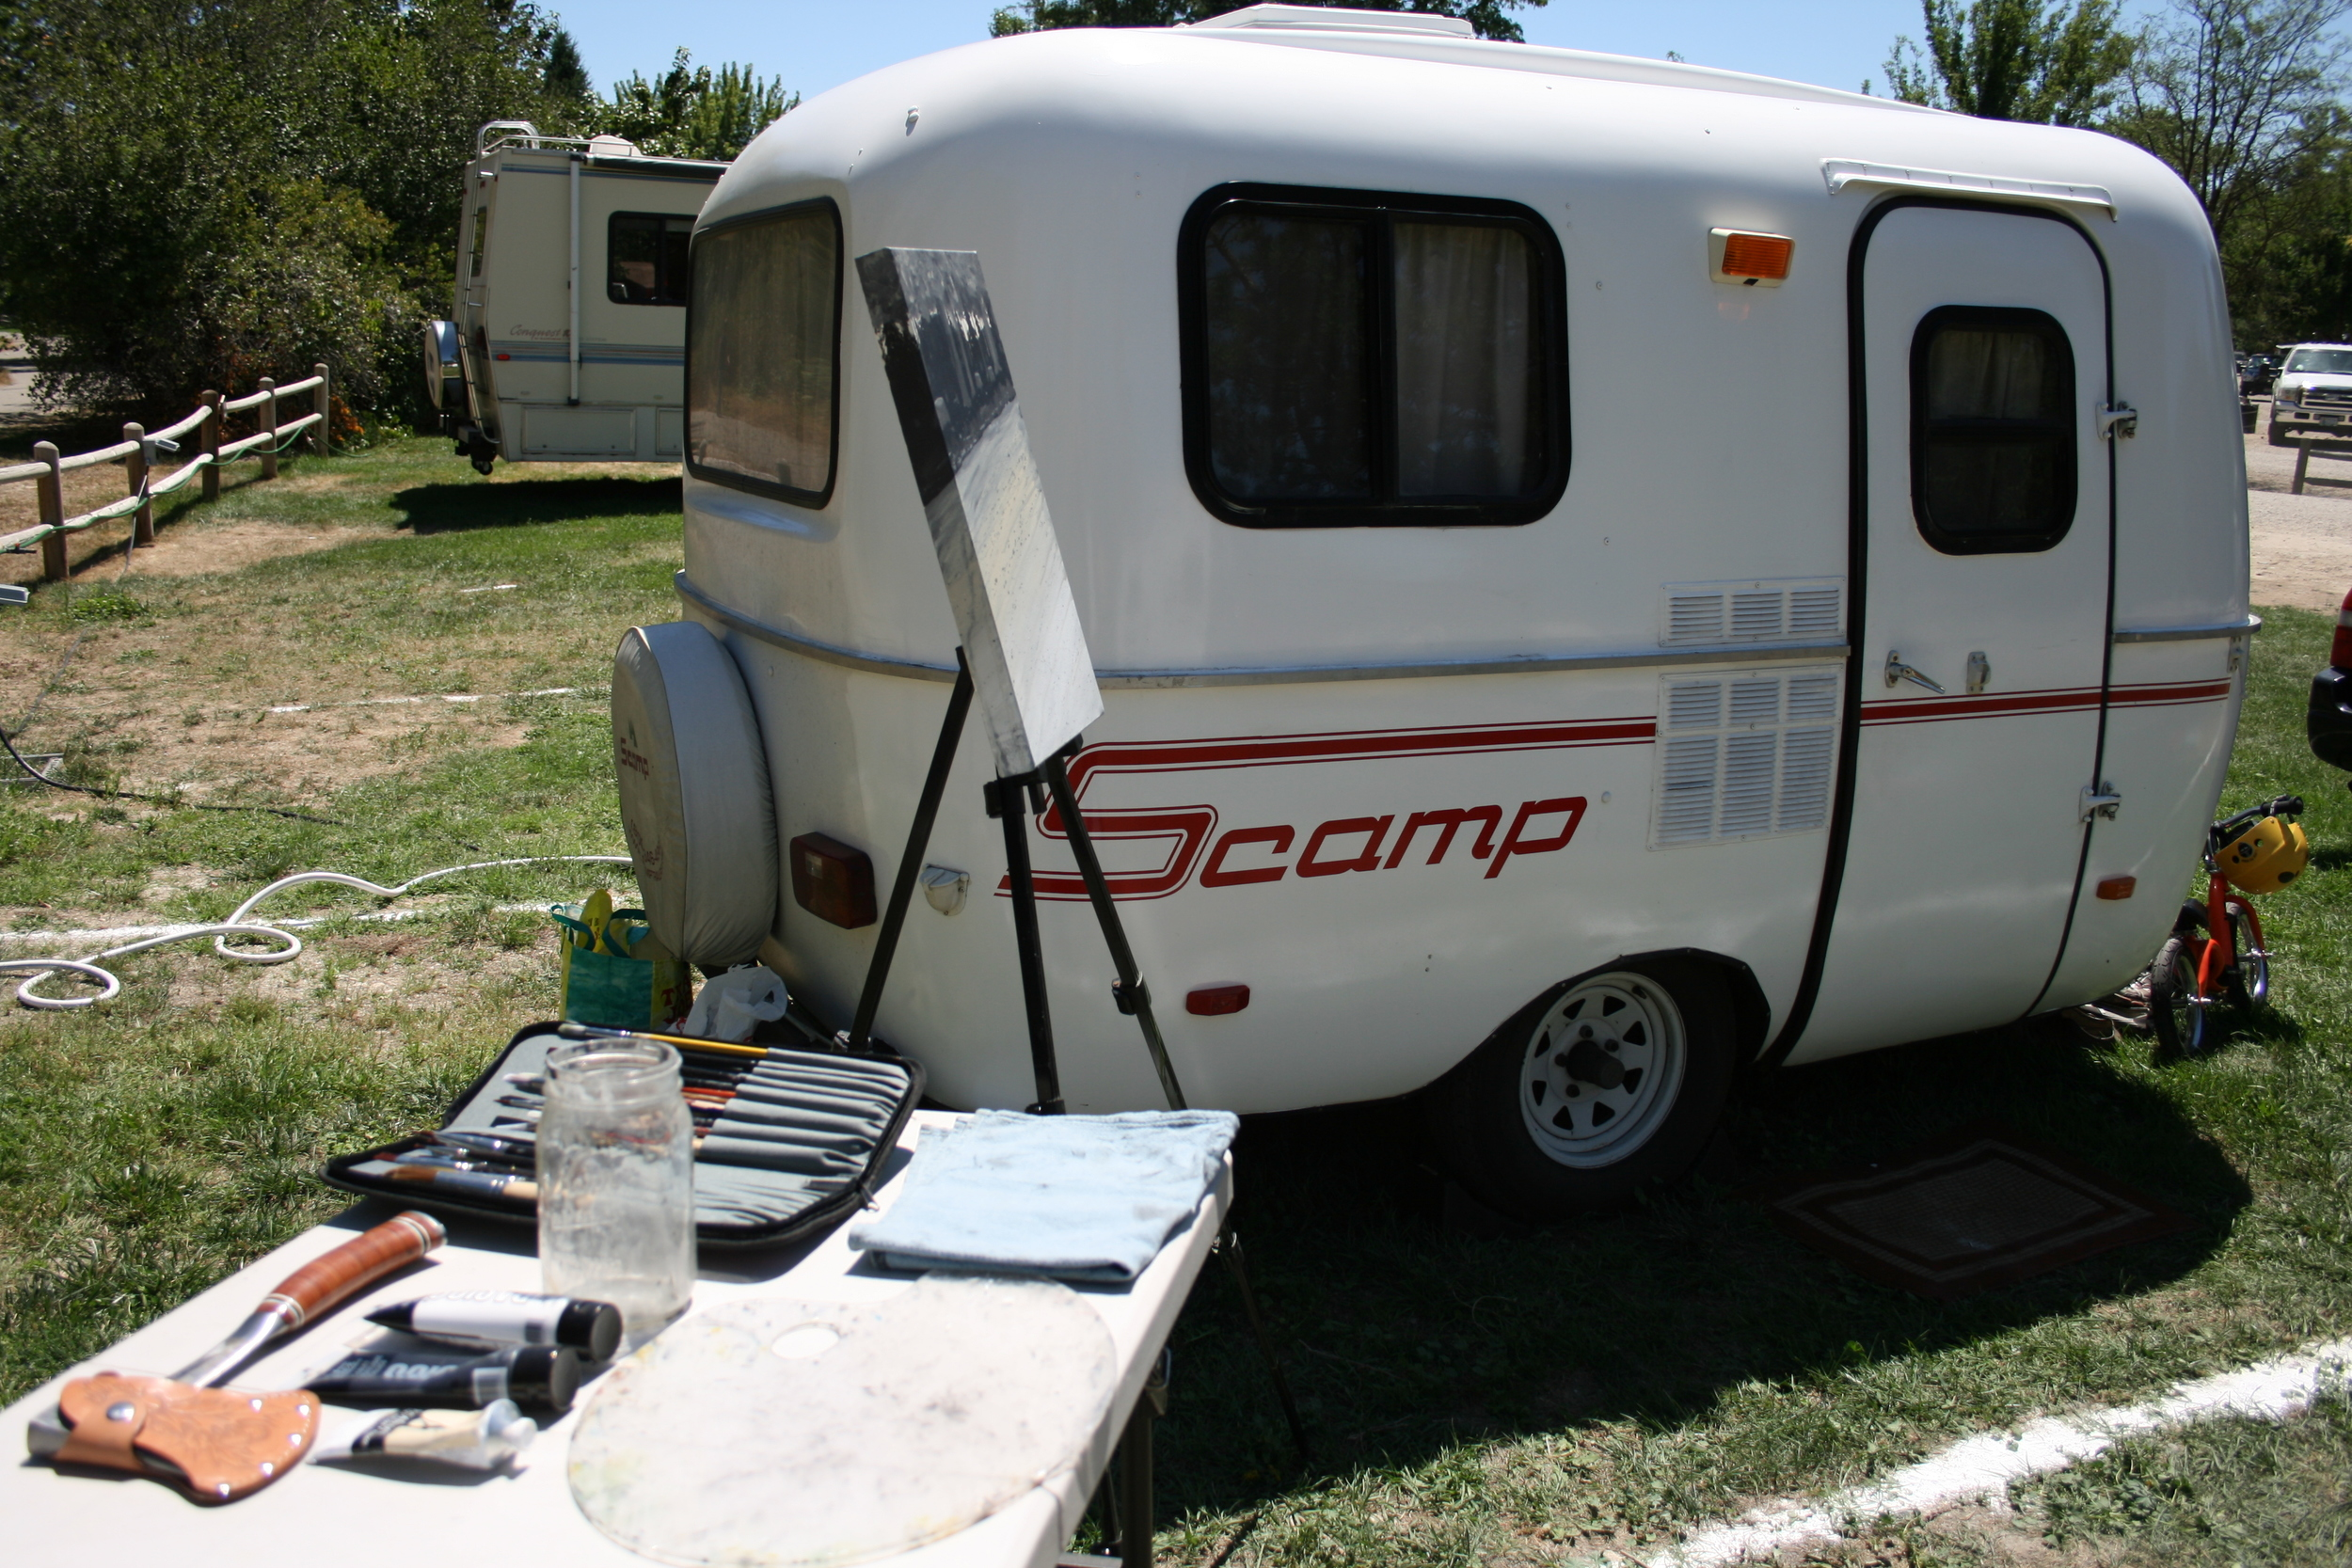 mobile campground studio  |  boise, id